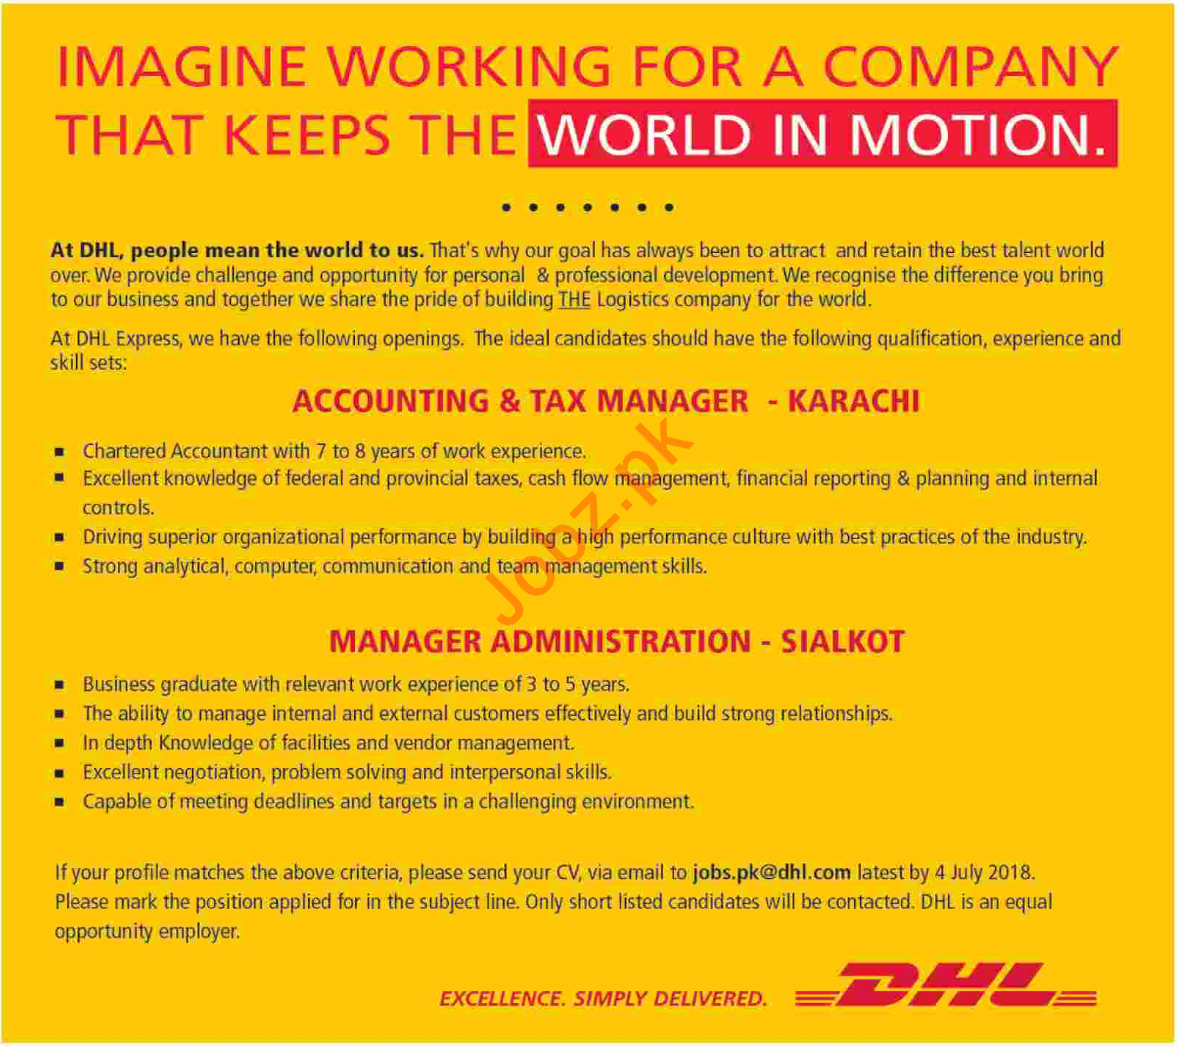 Accounting and Tax Manager at DHL